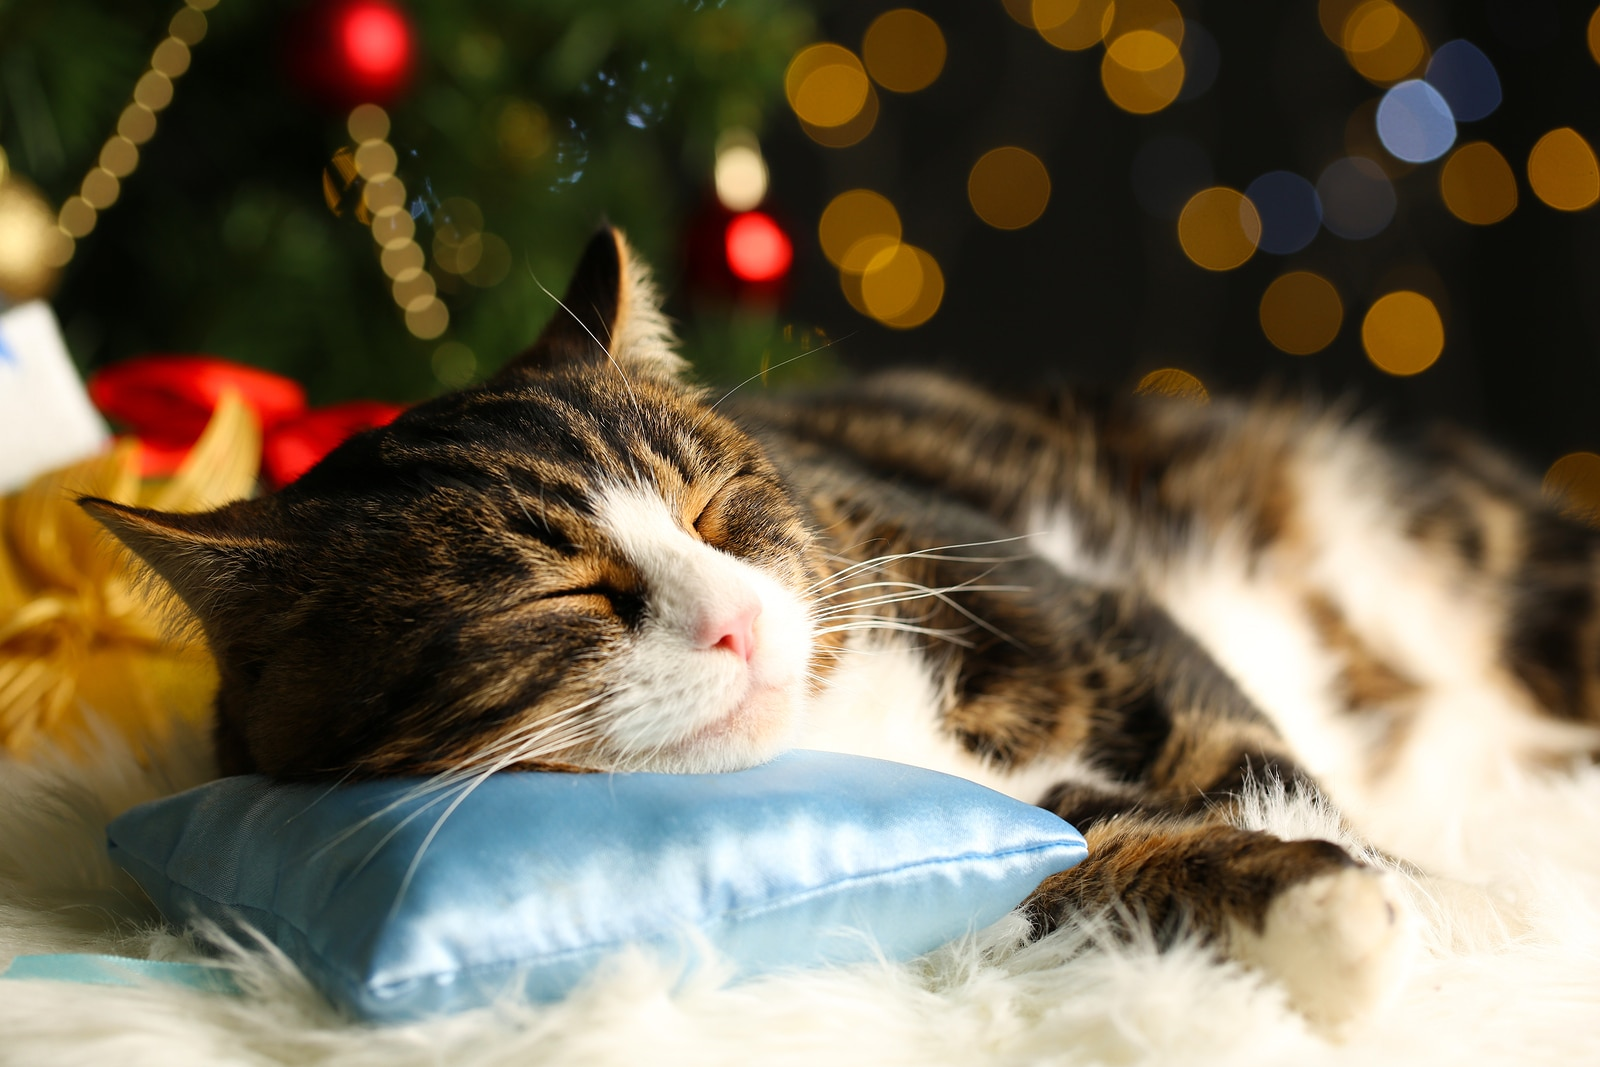 Black and orange cat sleeping with head on blue pillow in front of Christmas décor.